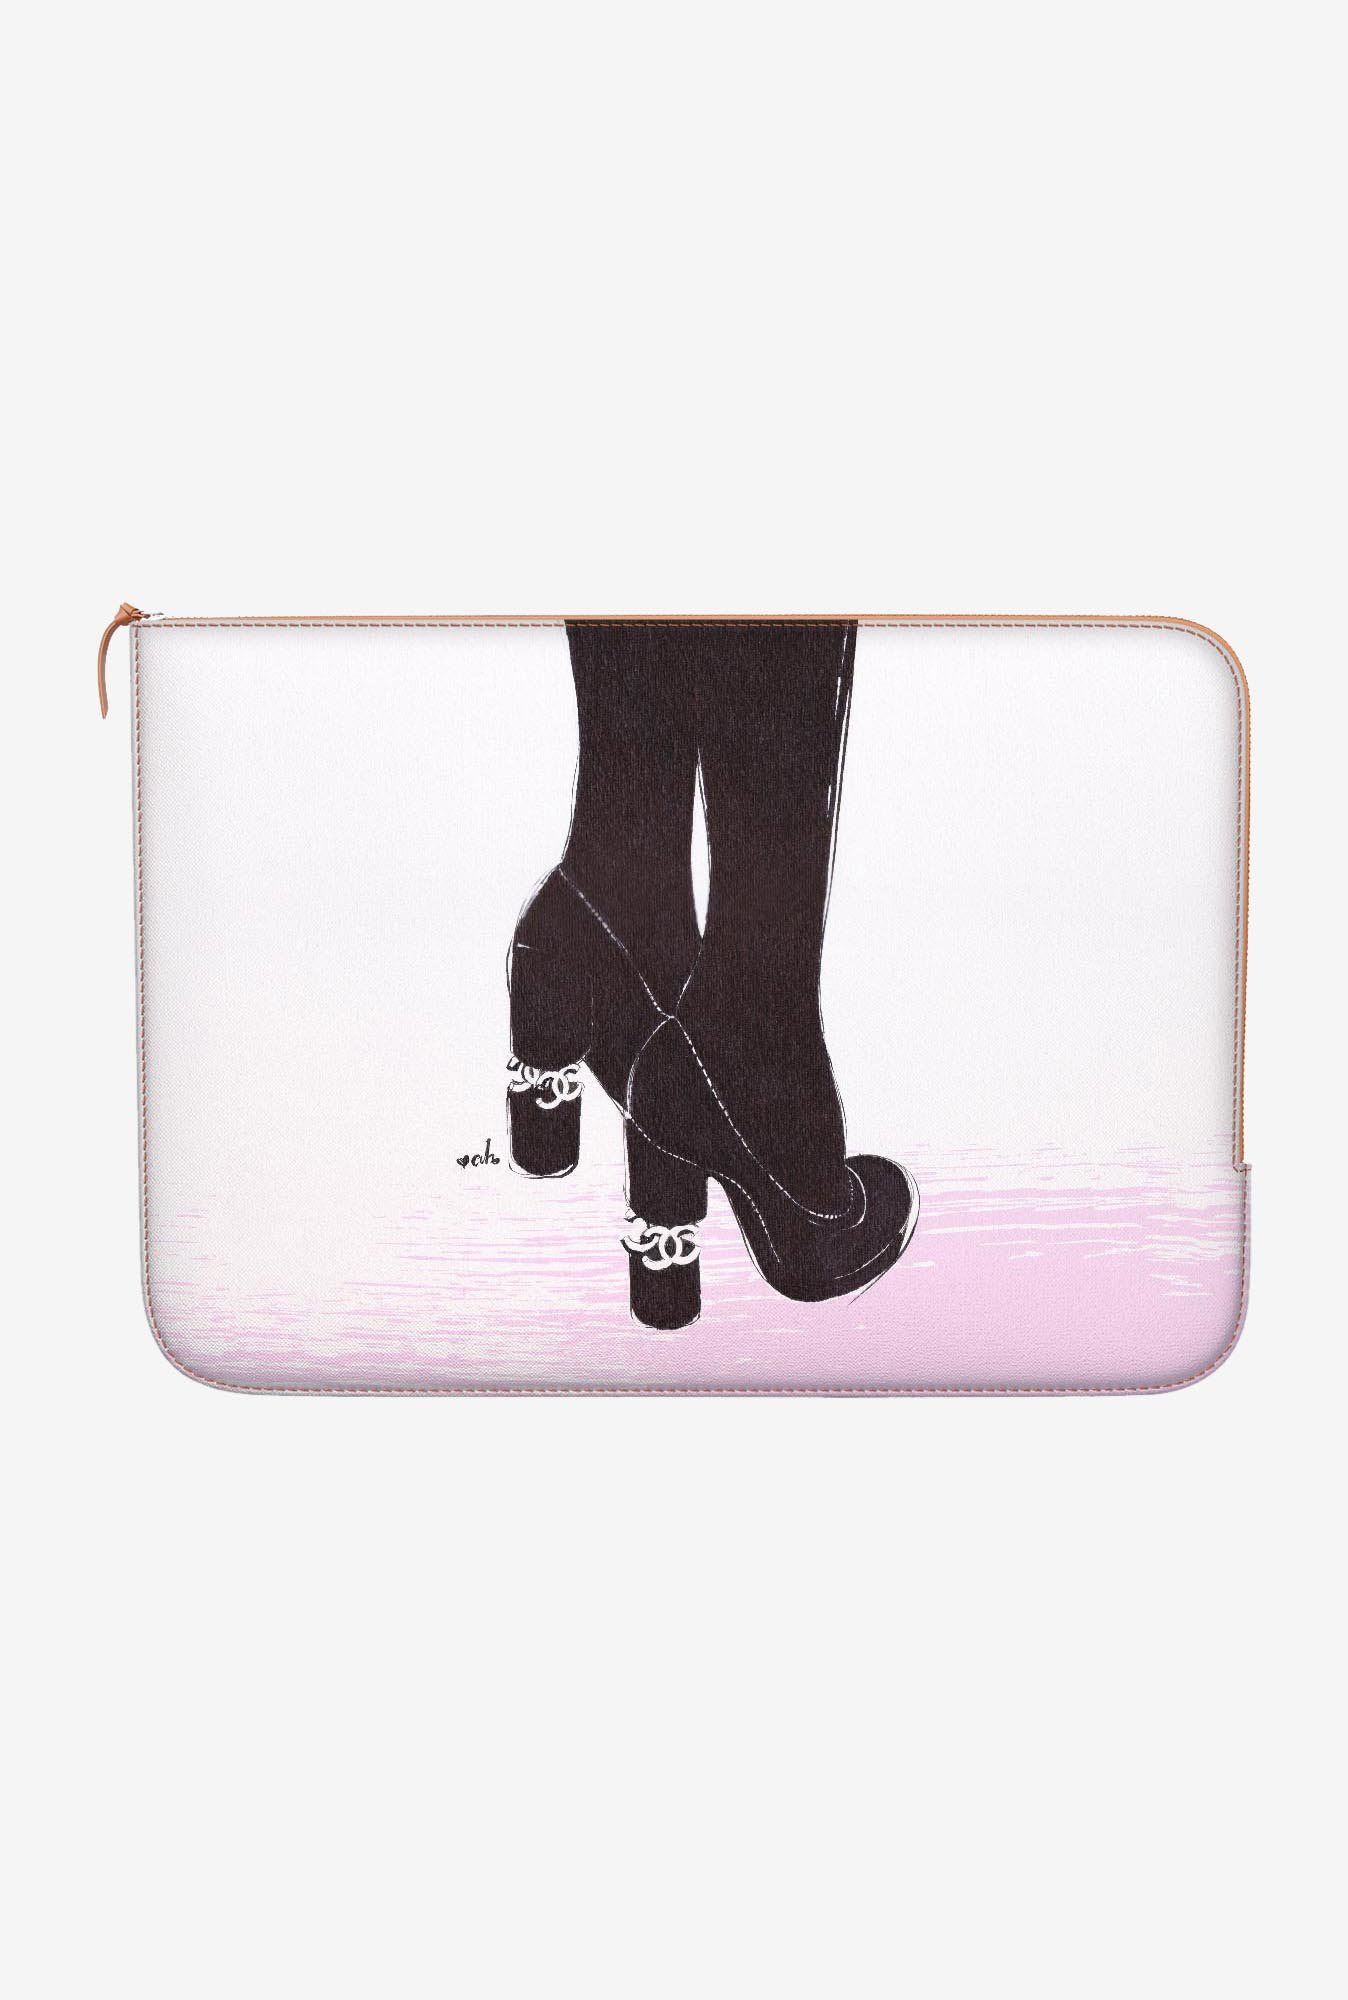 "DailyObjects The First Date Macbook Air 11"" Zippered Sleeve"